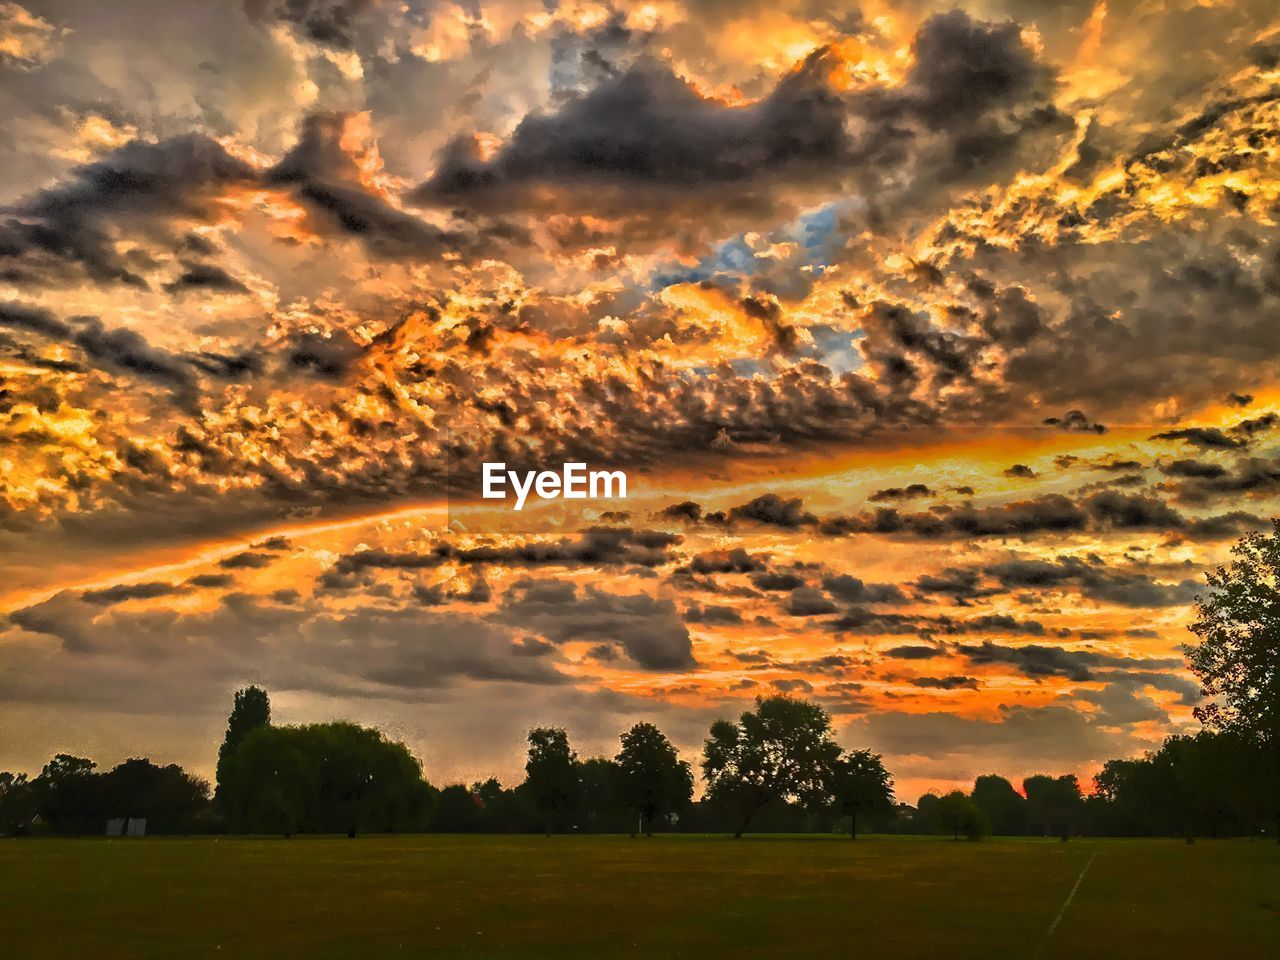 sunset, beauty in nature, cloud - sky, nature, scenics, tranquil scene, tree, sky, tranquility, dramatic sky, orange color, no people, majestic, field, idyllic, outdoors, landscape, growth, grass, day